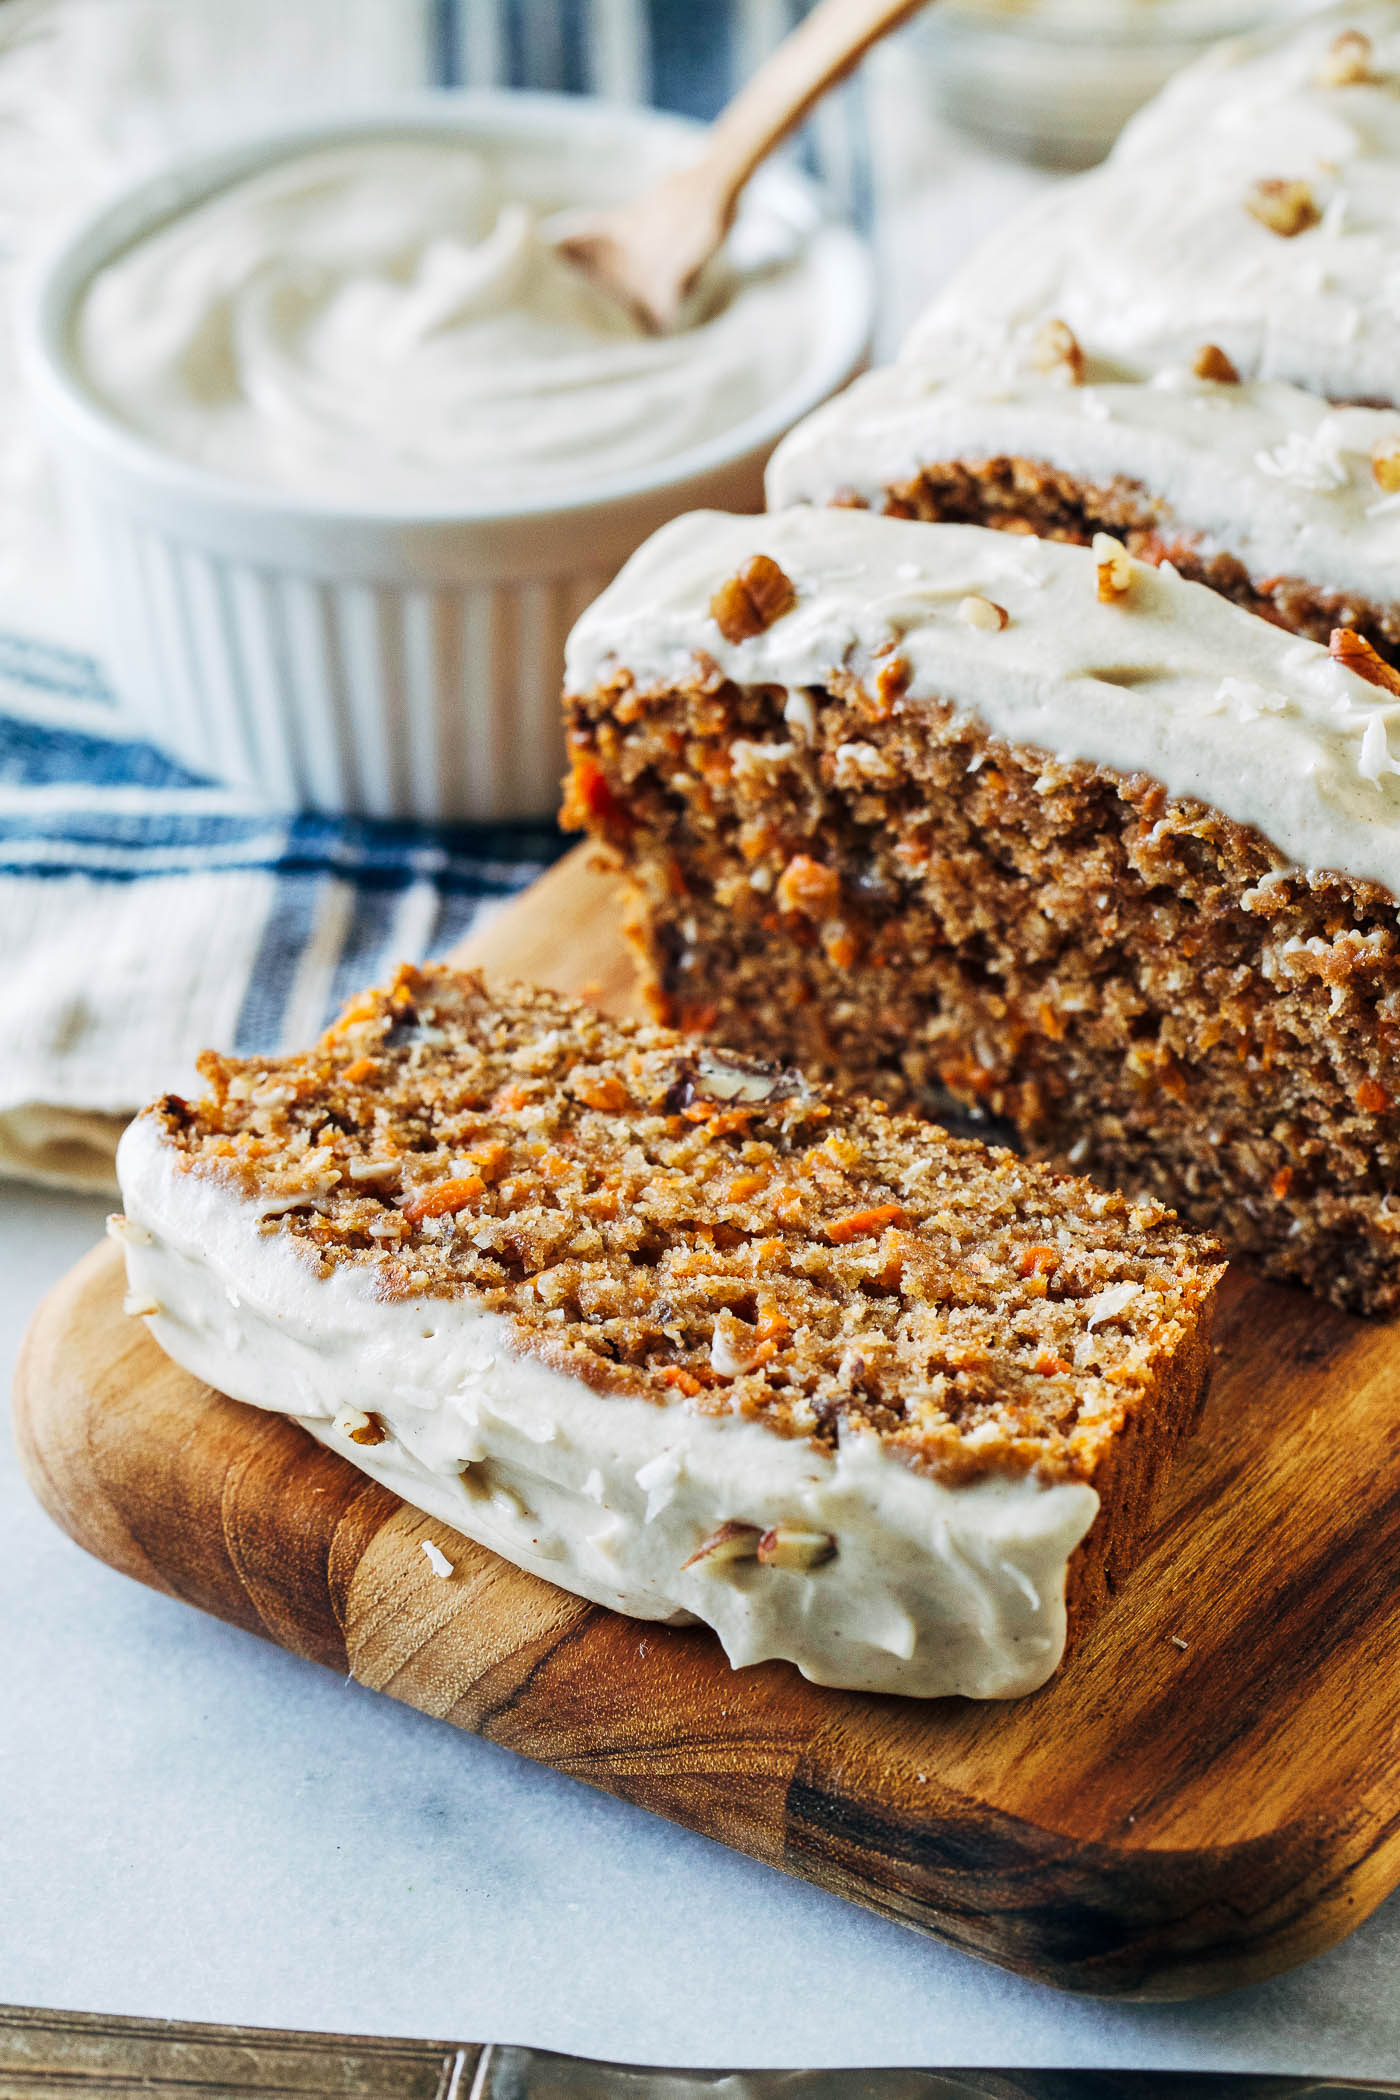 Vegan Banana Carrot Bread With Cashew Cream Cheese Icing Making